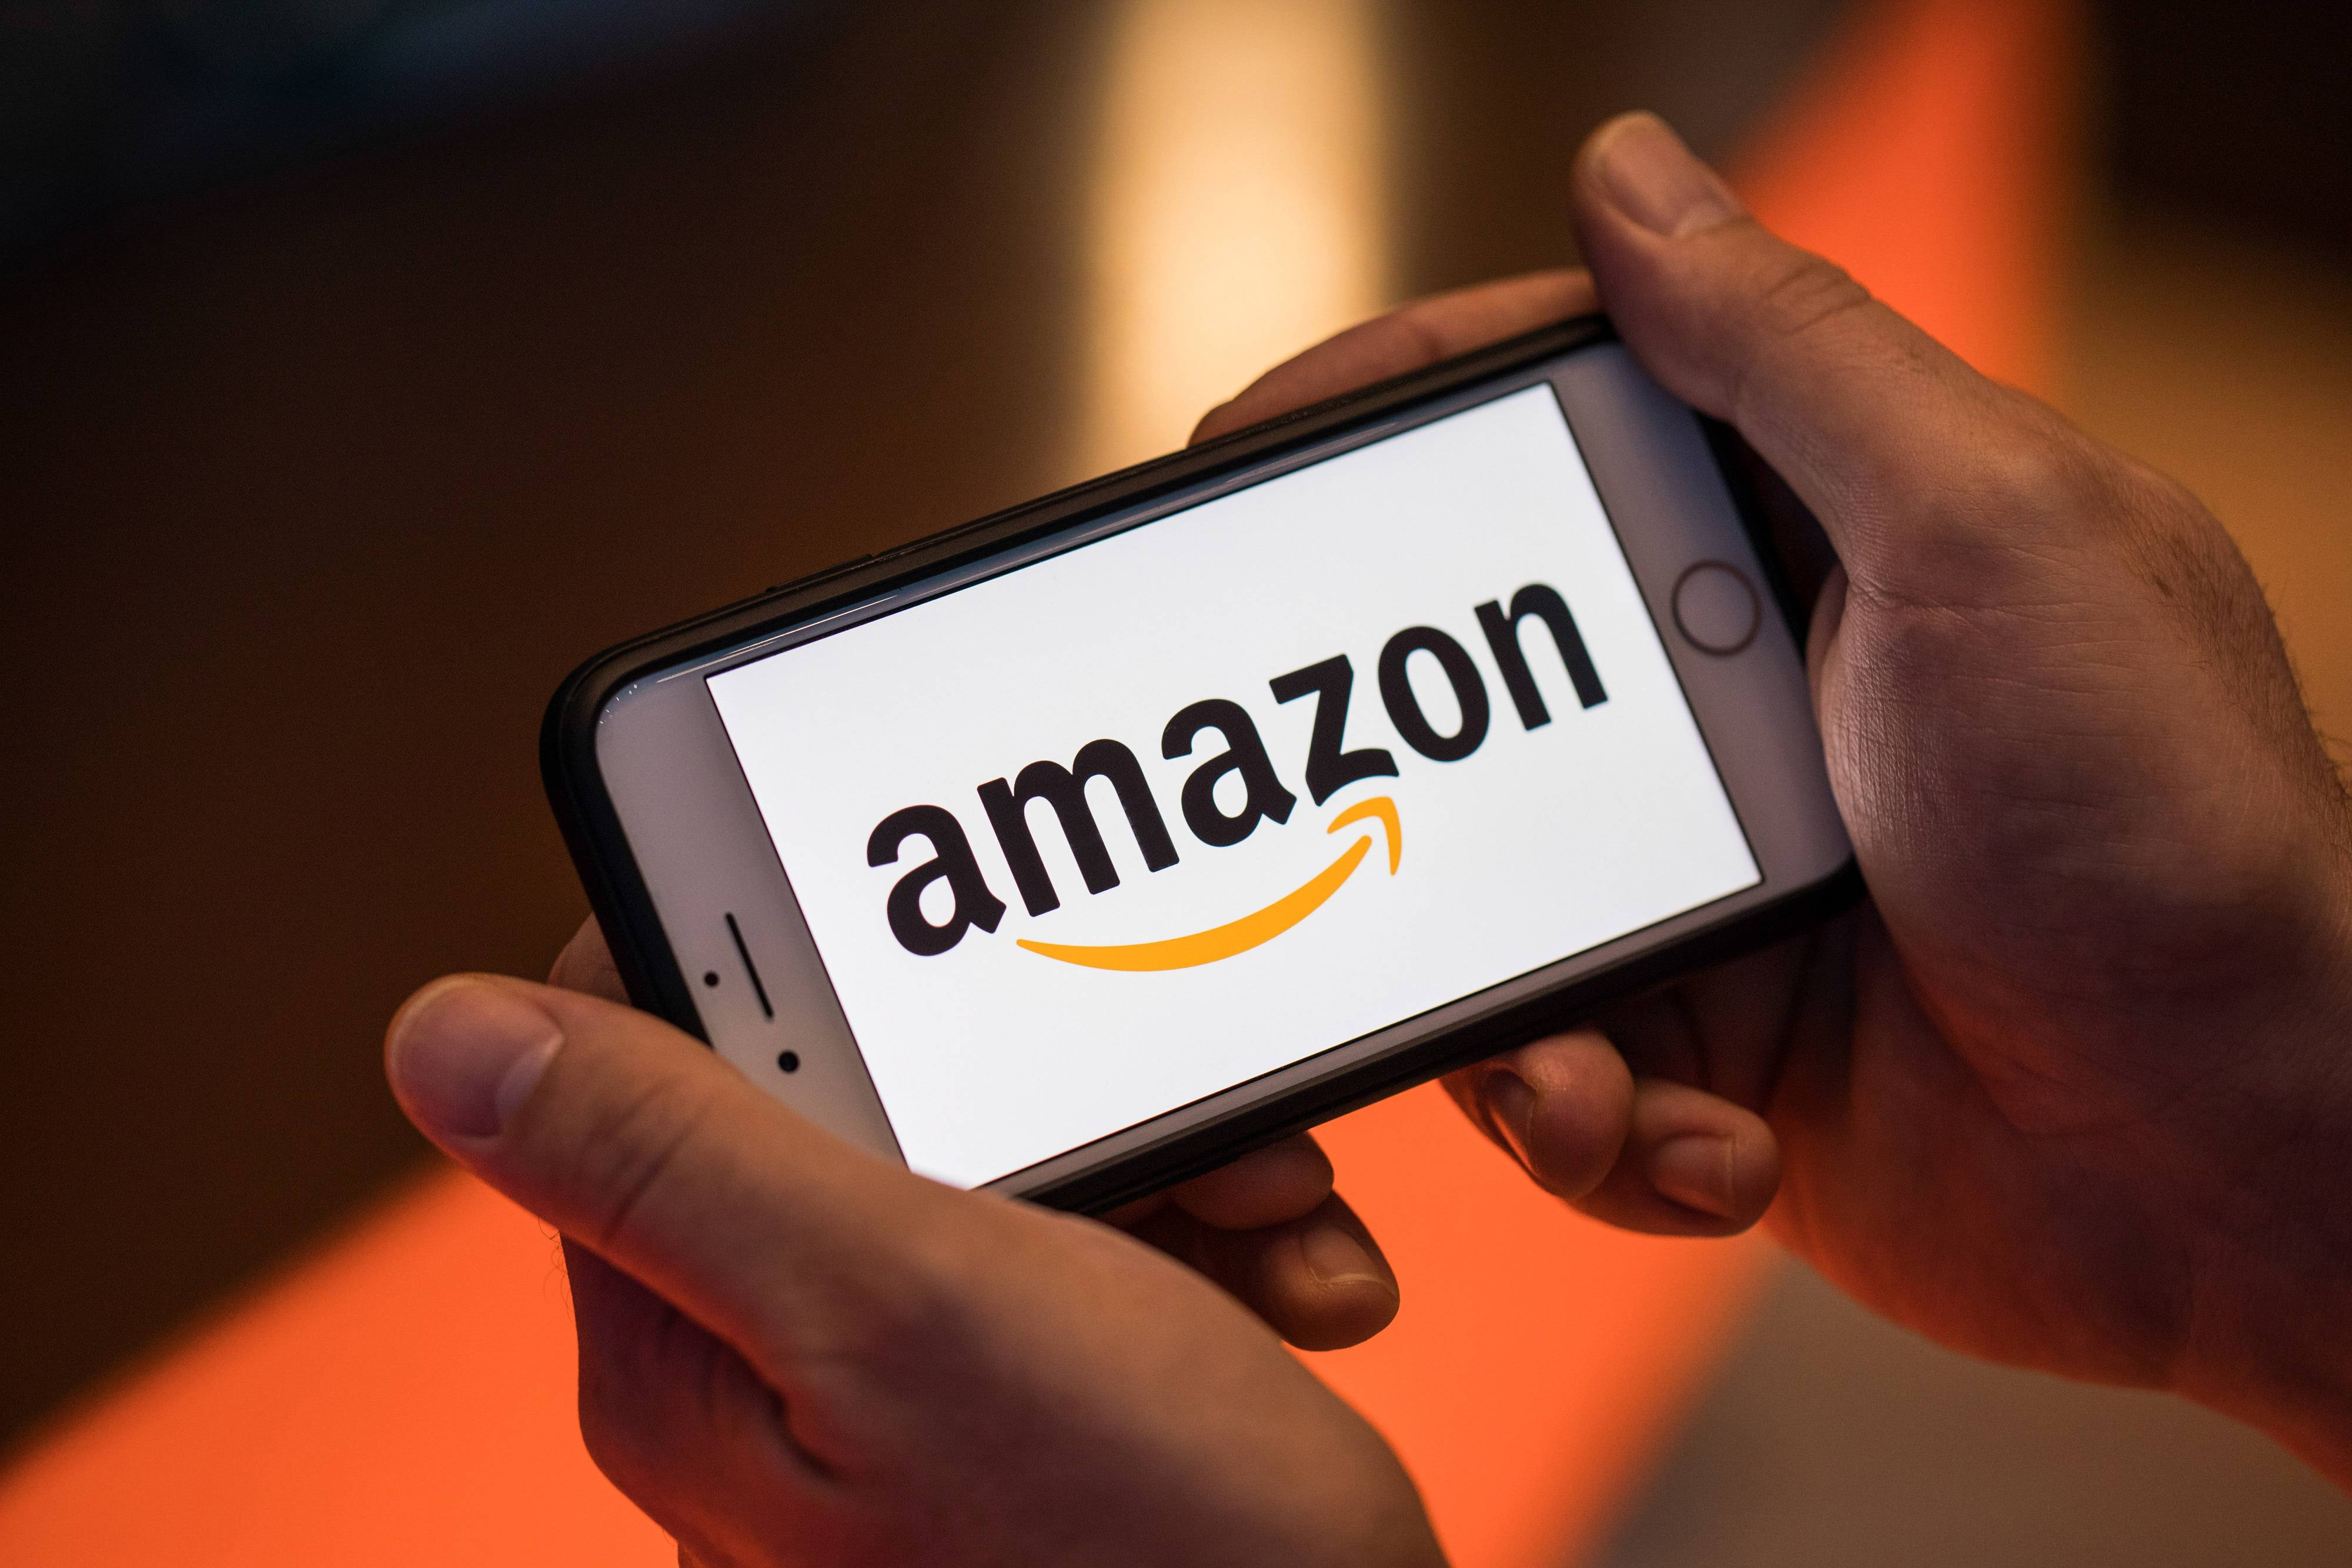 Amazon is planning to use its massive cloud computing service to jump into the streaming market for video game play, according to a new report from the Information. The service, which could potentially bring top-notch titles to virtually anyone with a smartphone or streaming device, could make Amazon a major competitor in the space already in play by Microsoft and Google.